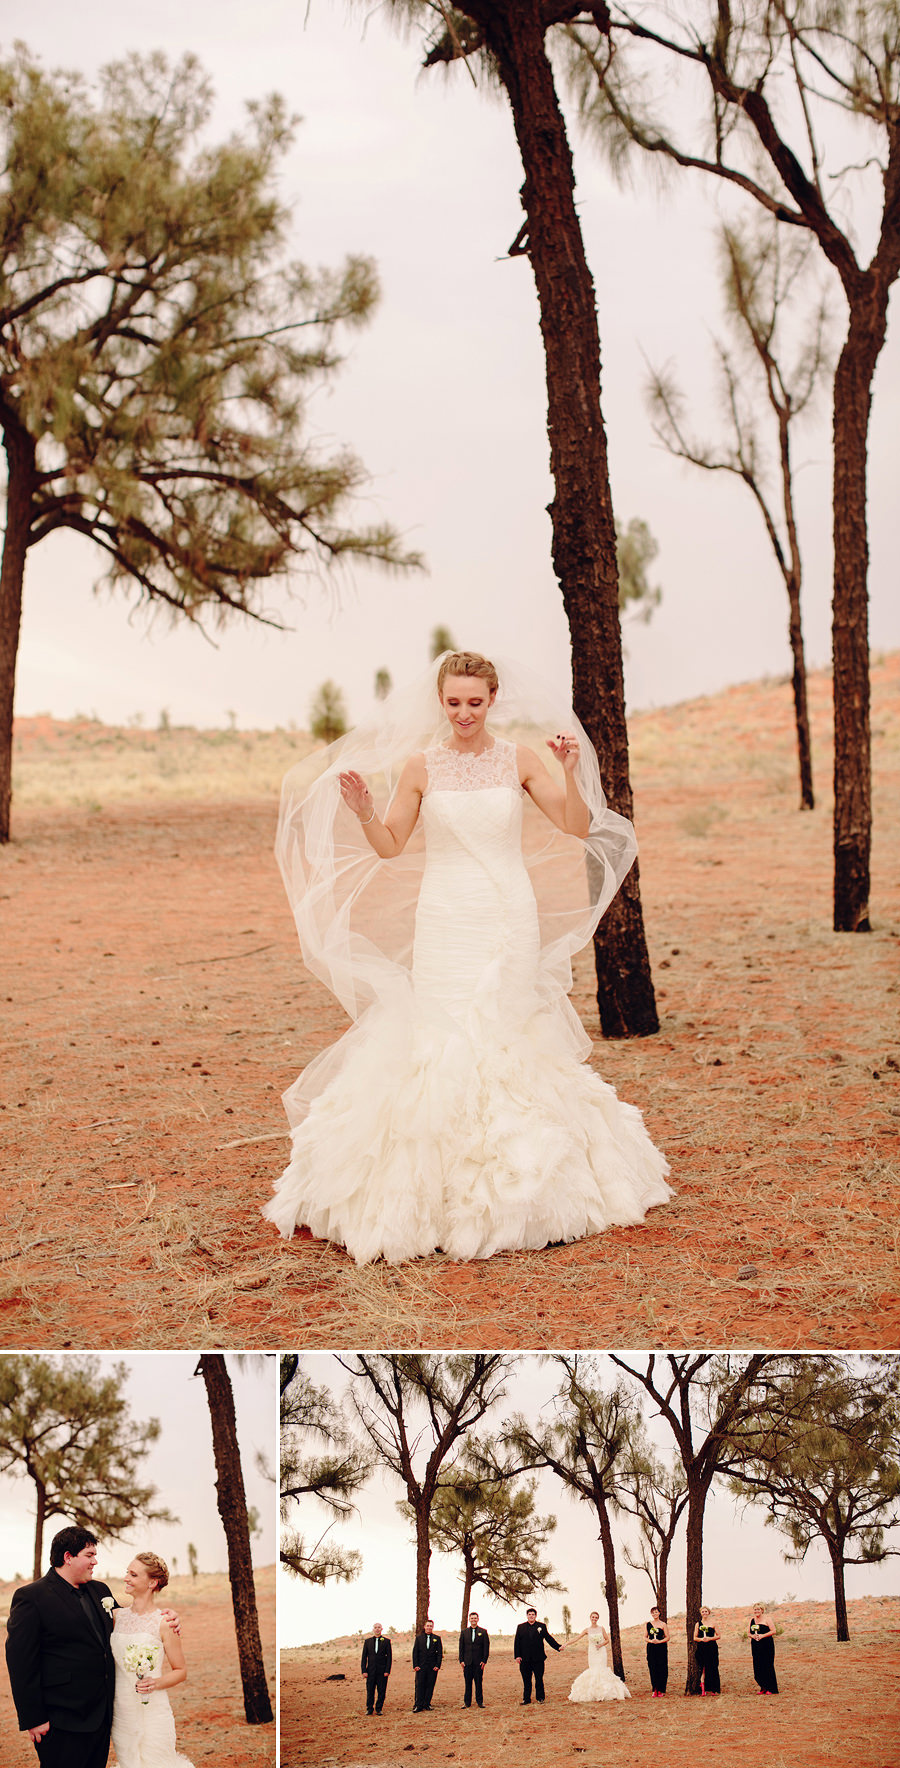 Finke Wedding Photographer: Finke Portraits